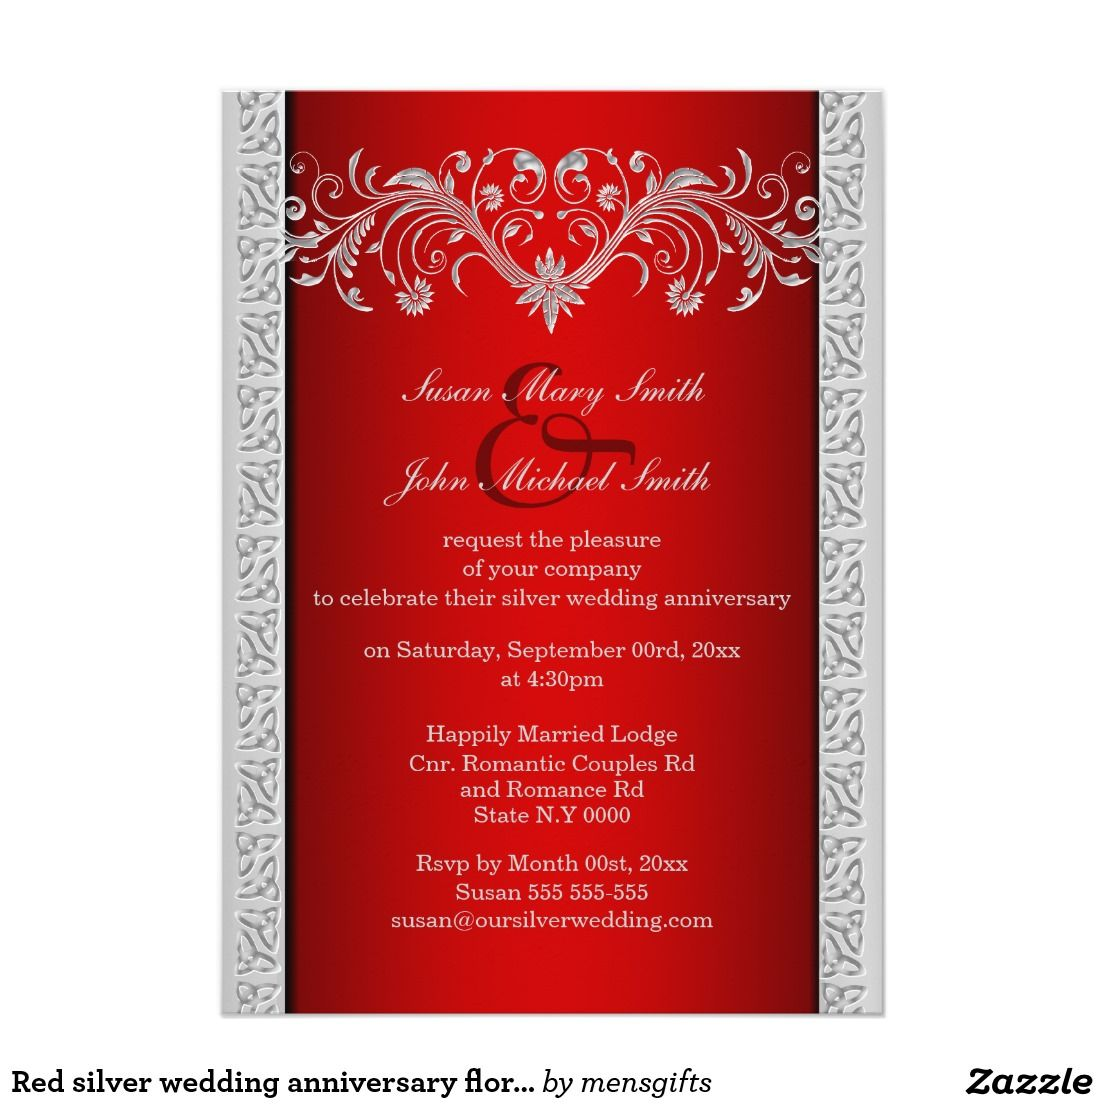 Red silver wedding anniversary floral invitation | Floral Wedding ...